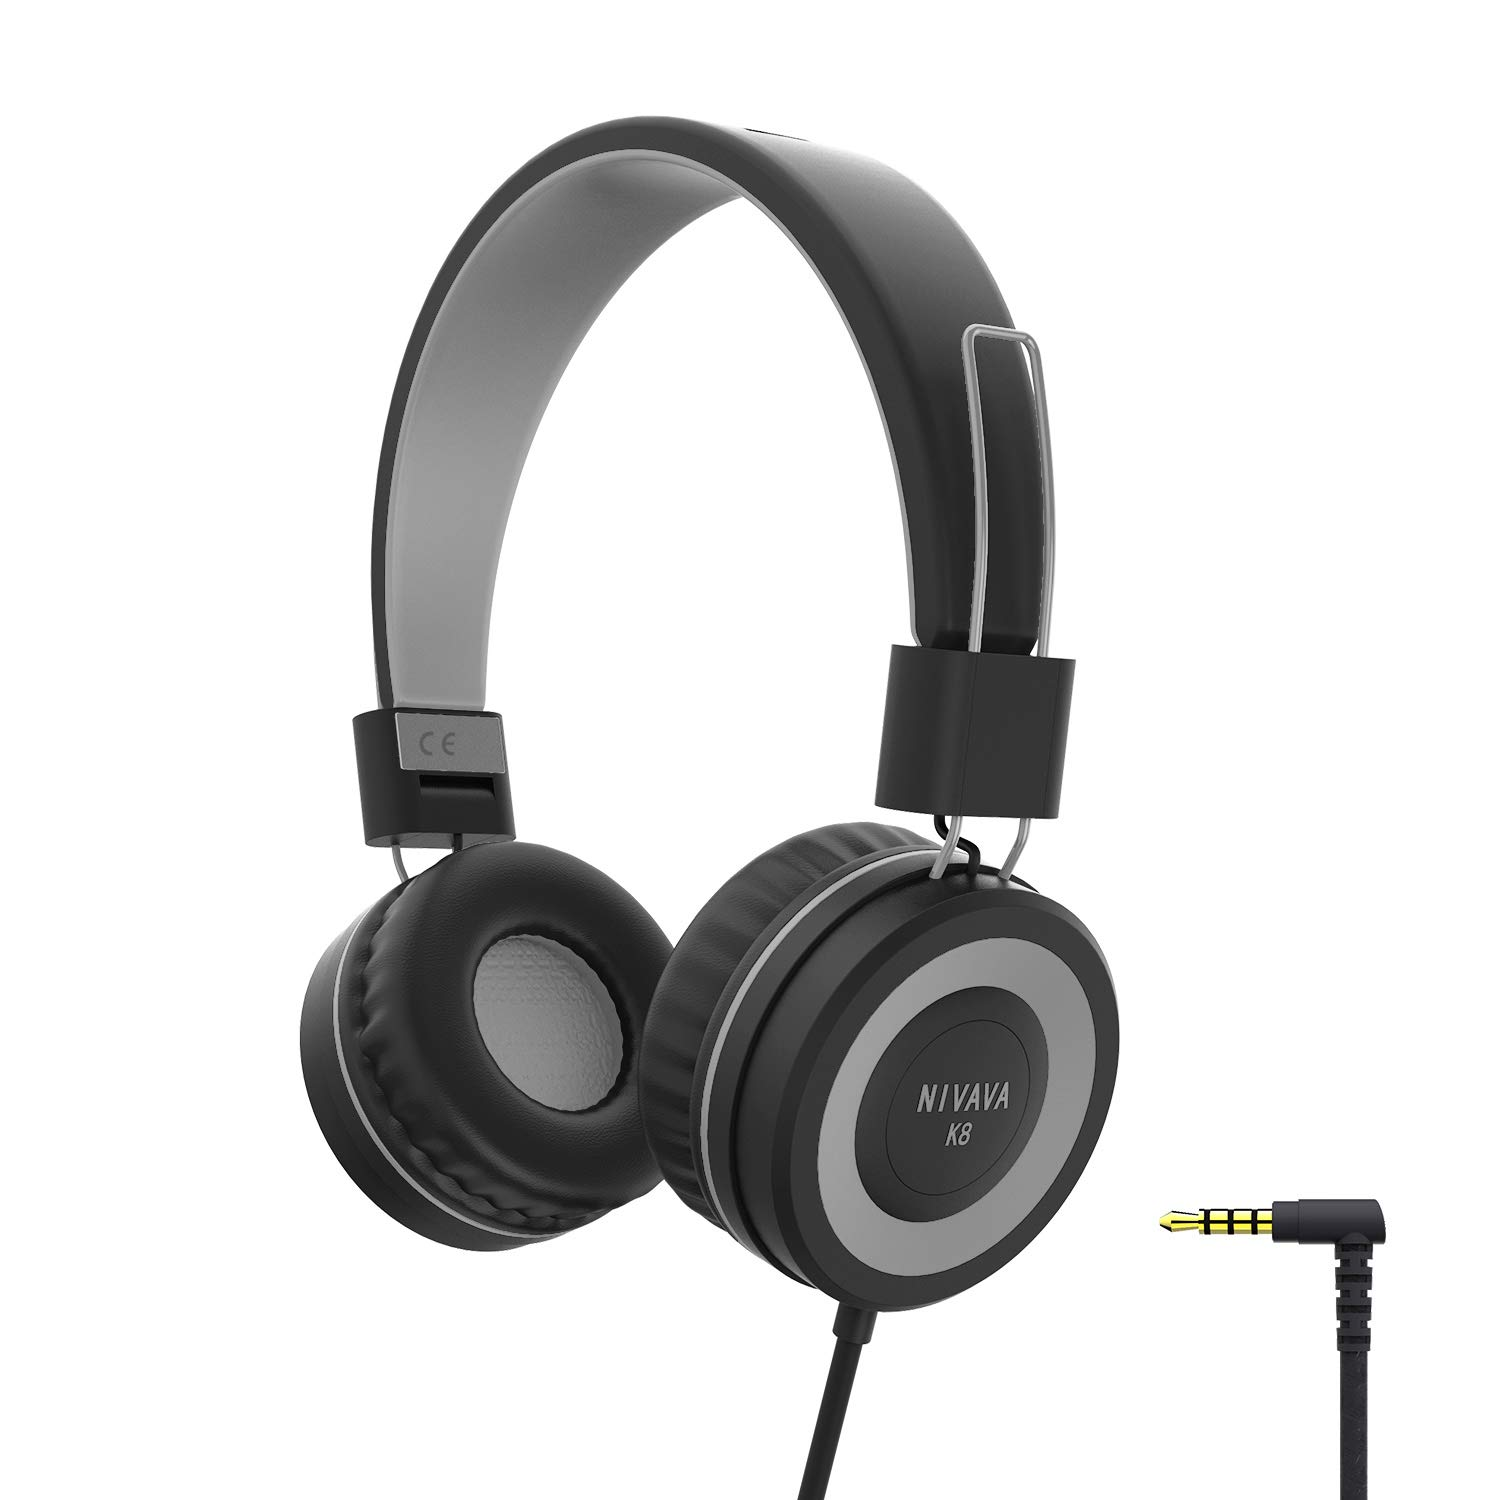 NIVAVA K8 Kids Headphones for Children Boys Girls Teens Wired Foldable Lightweight Stereo On Ear Headset for iPad Cellphones Computer MP3/4 Kindle Airplane School(Black&Gray )